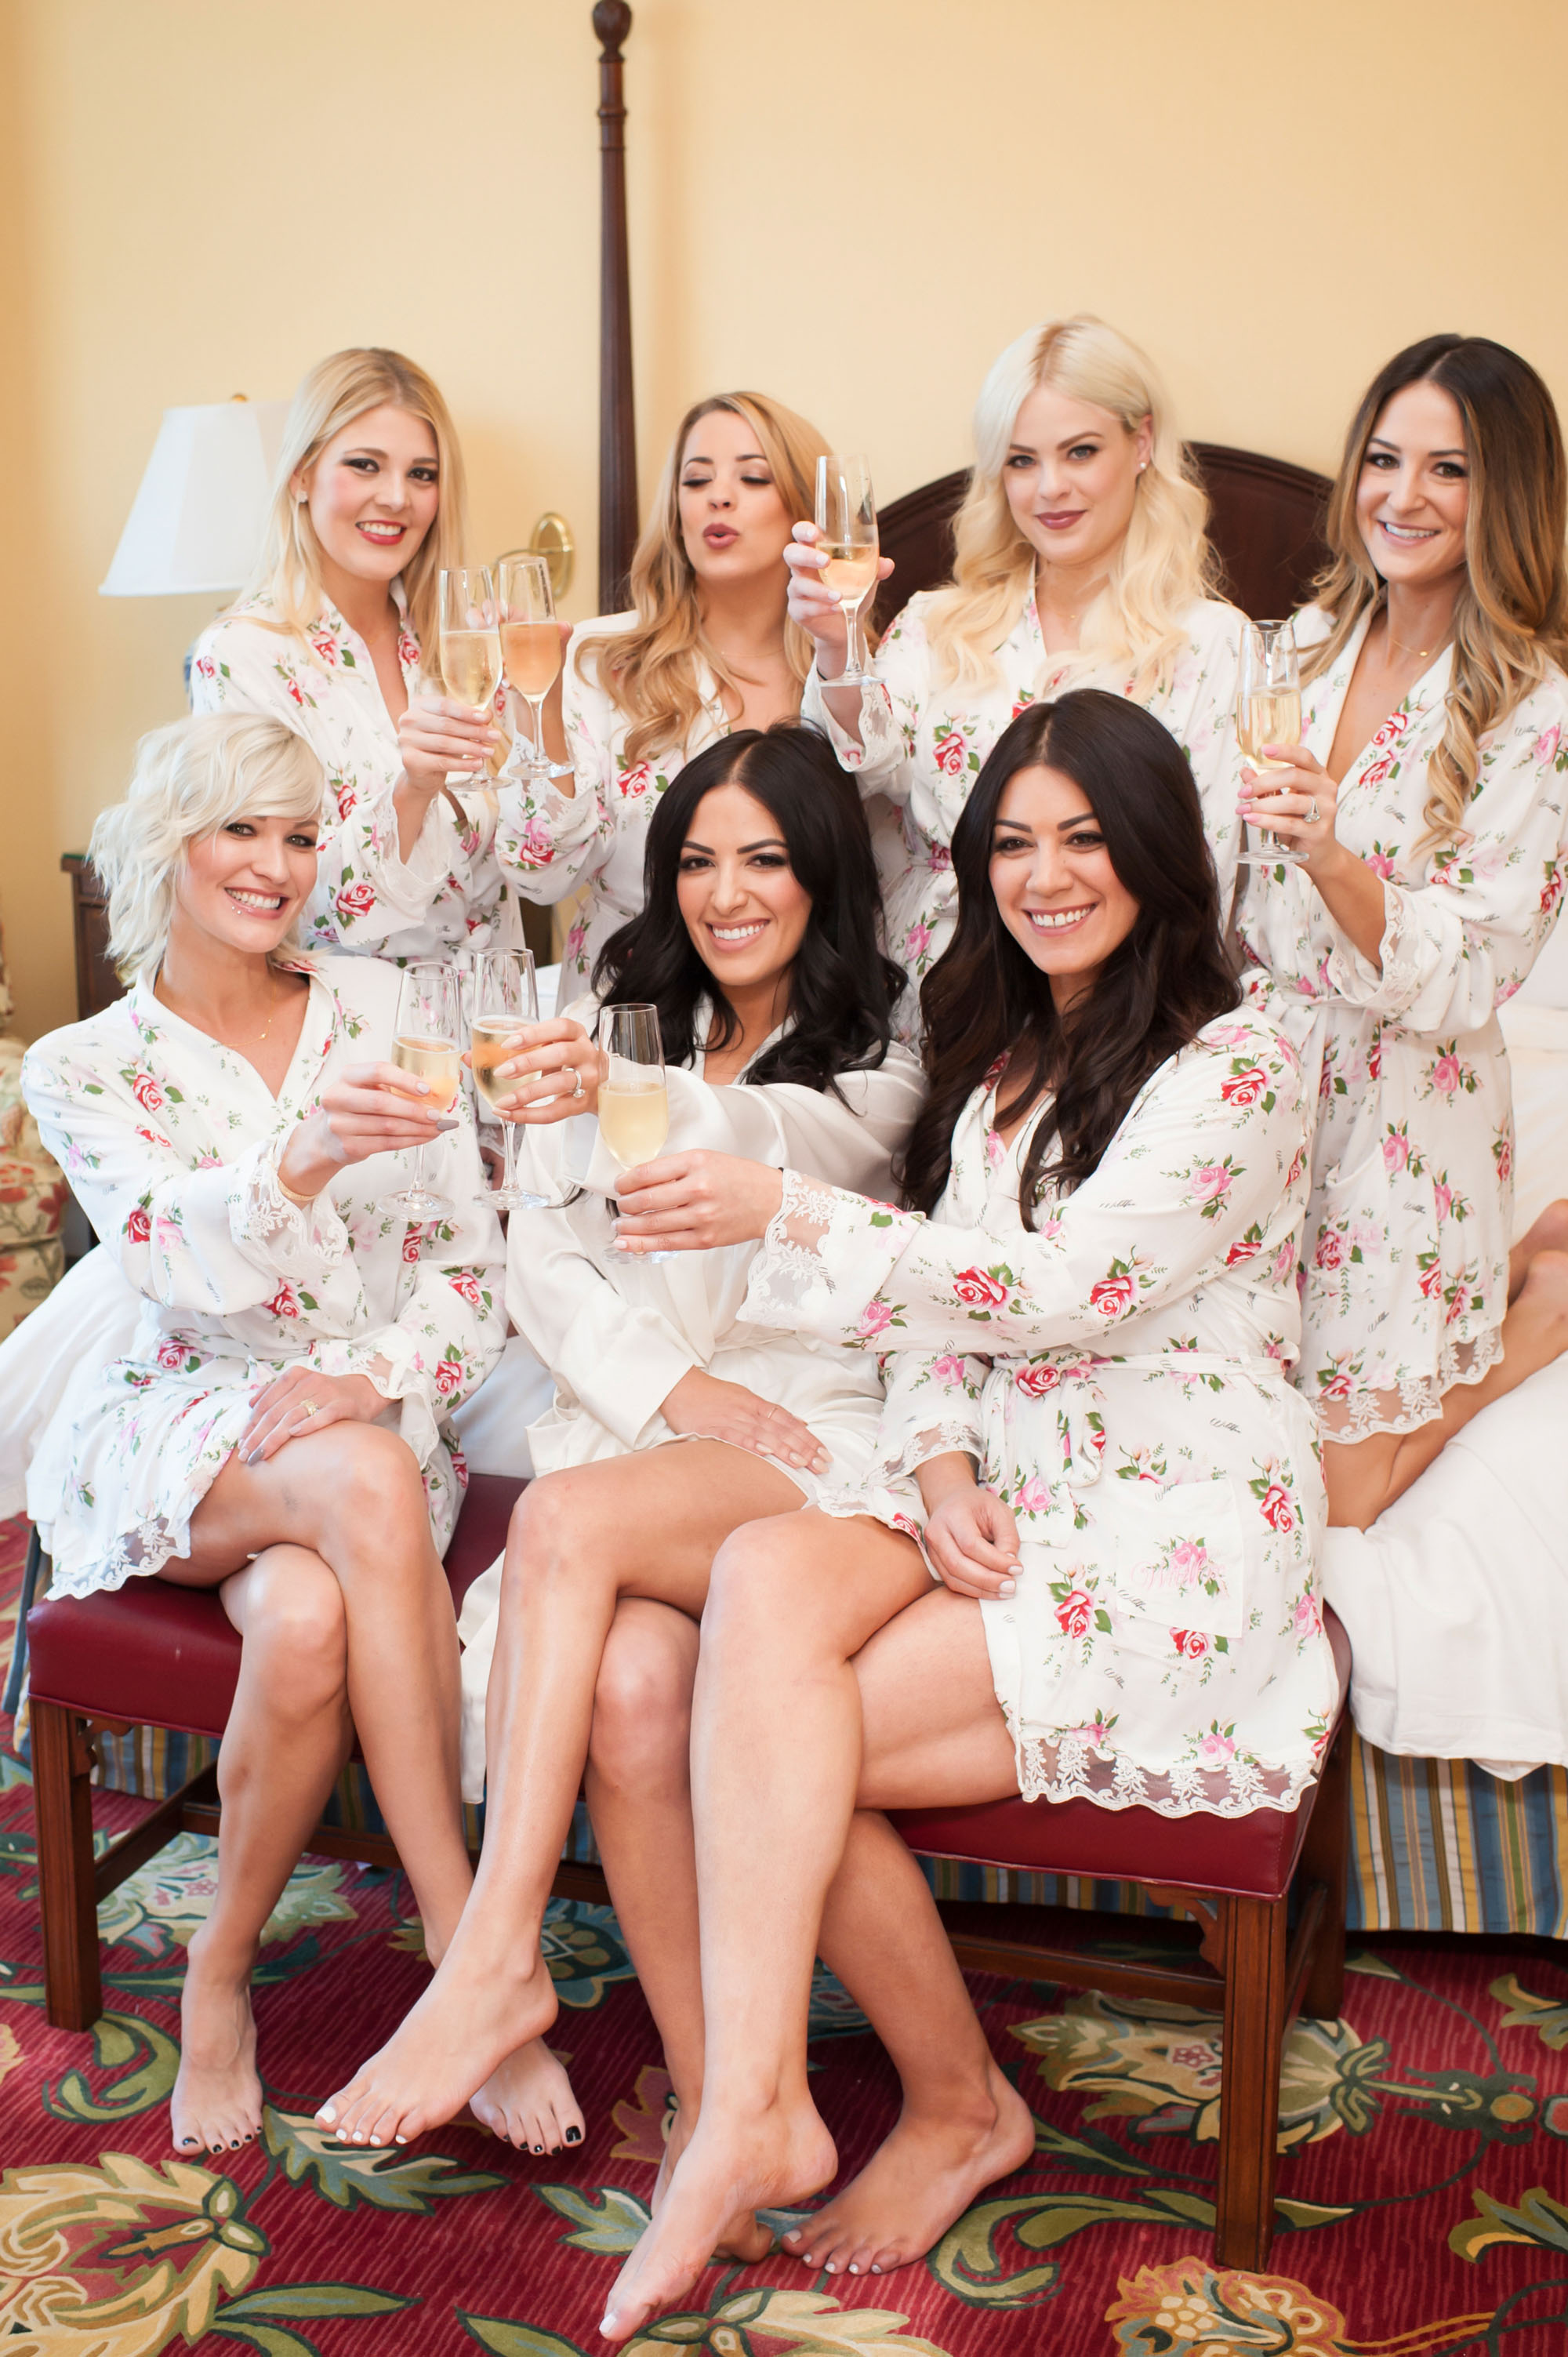 Bride and bridesmaids getting ready in bridal suite with champagne